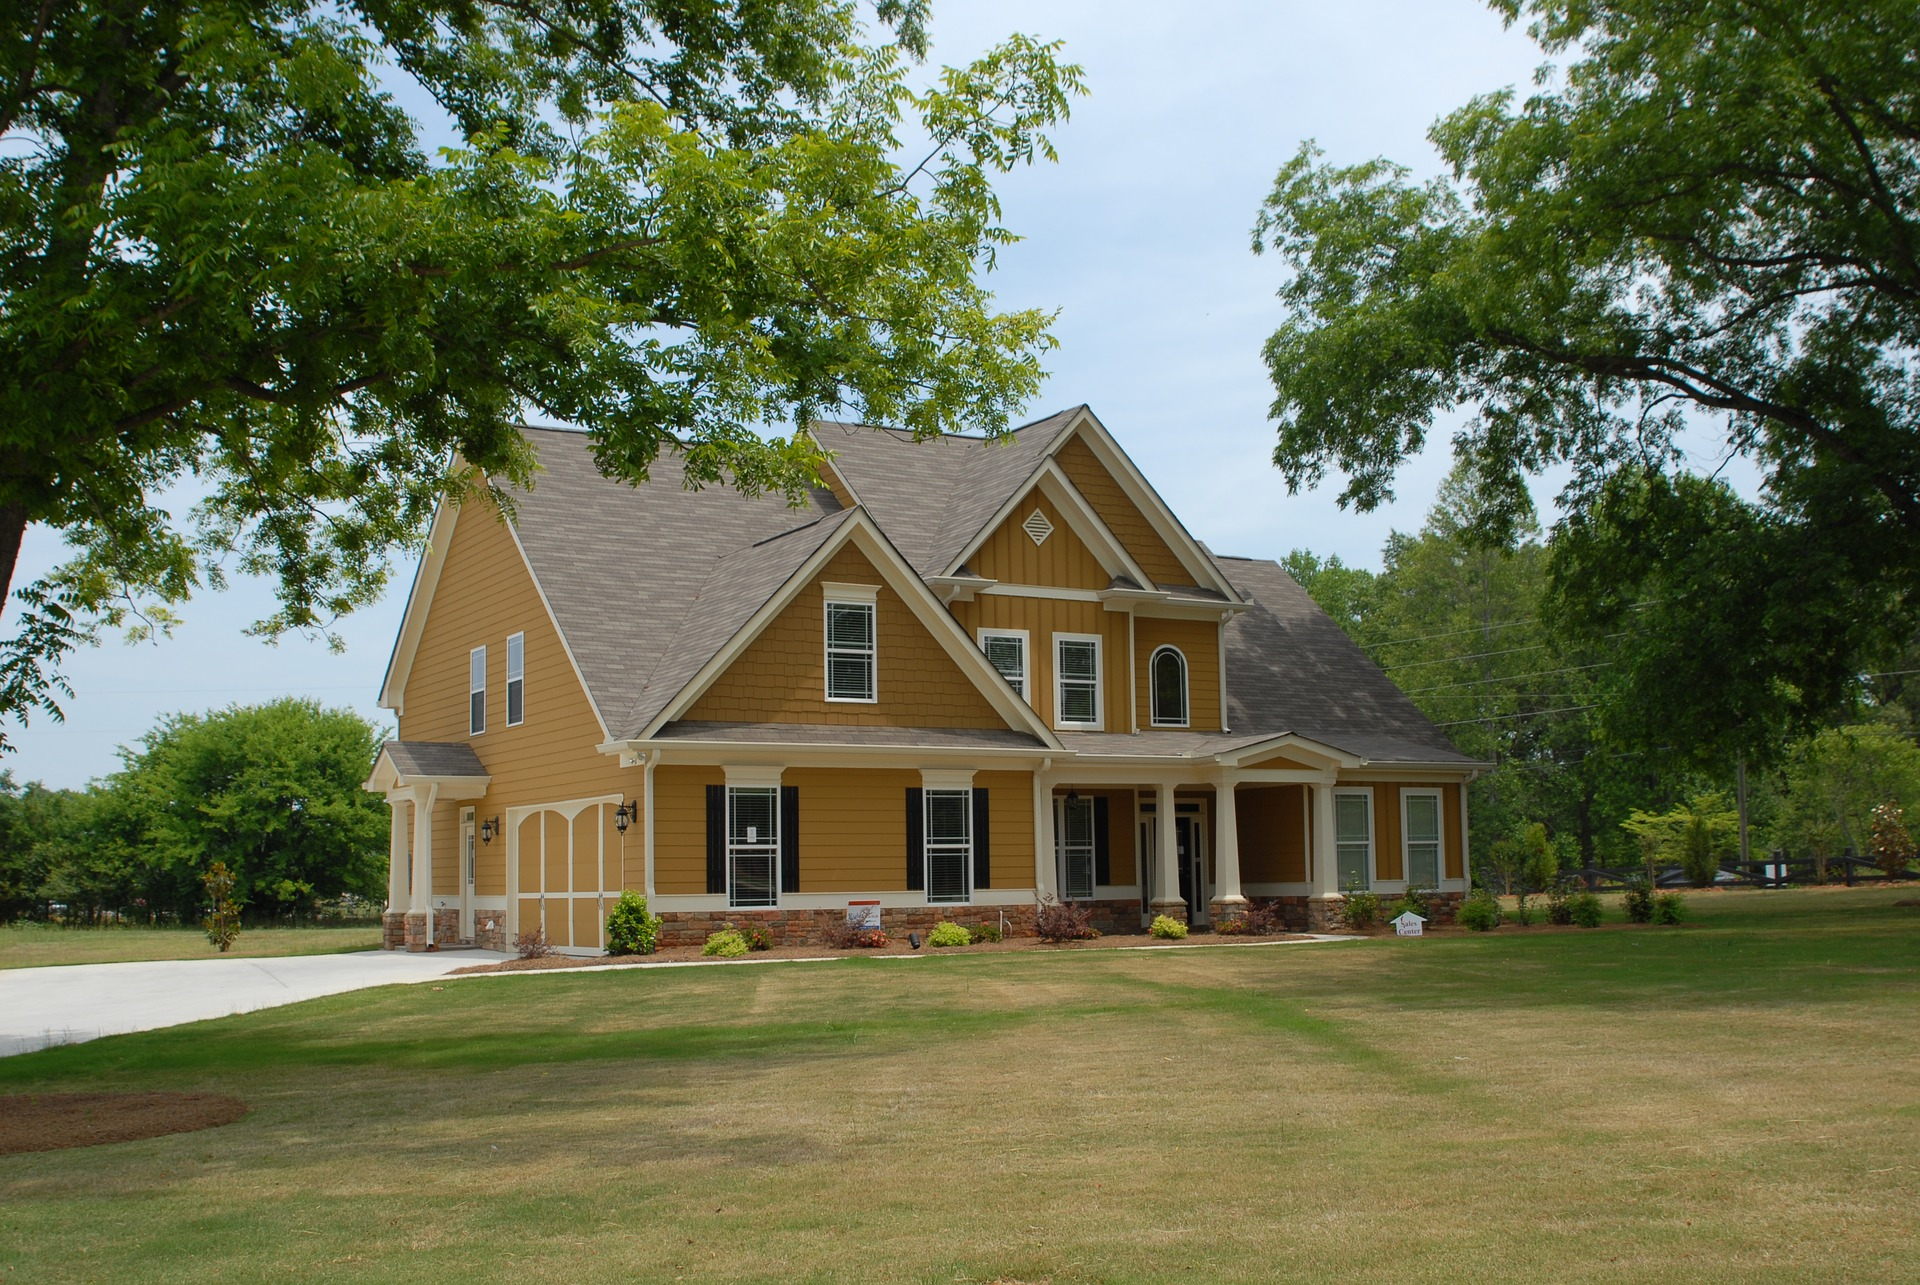 New Homes For Sale In Fort Worth, Texas